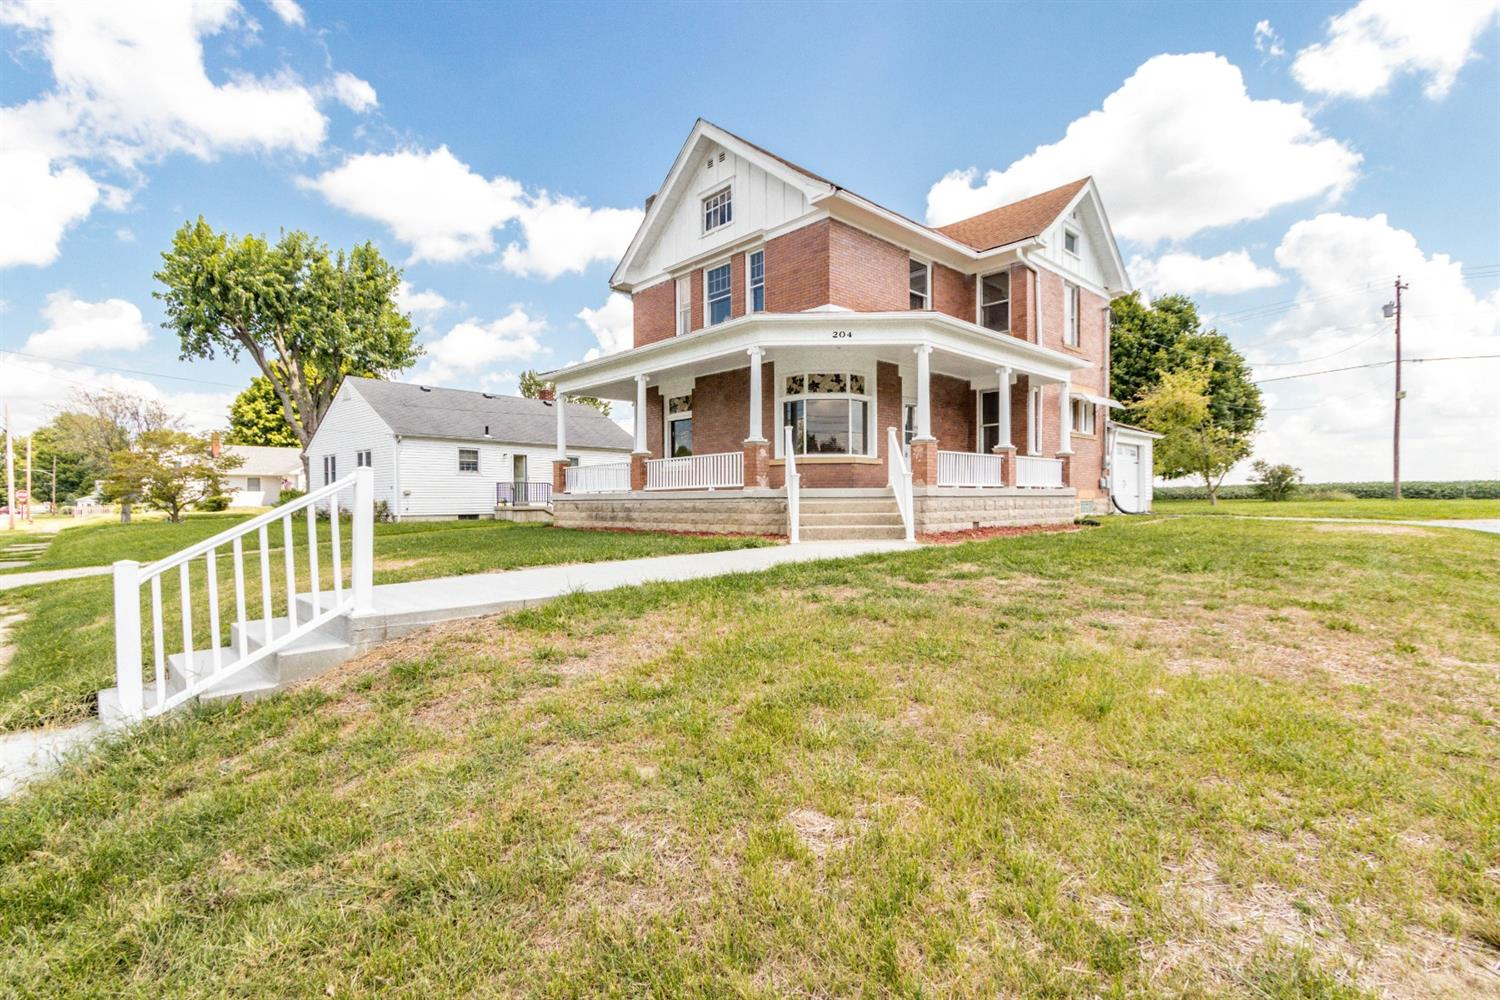 204 Eaton St Preble County, OH